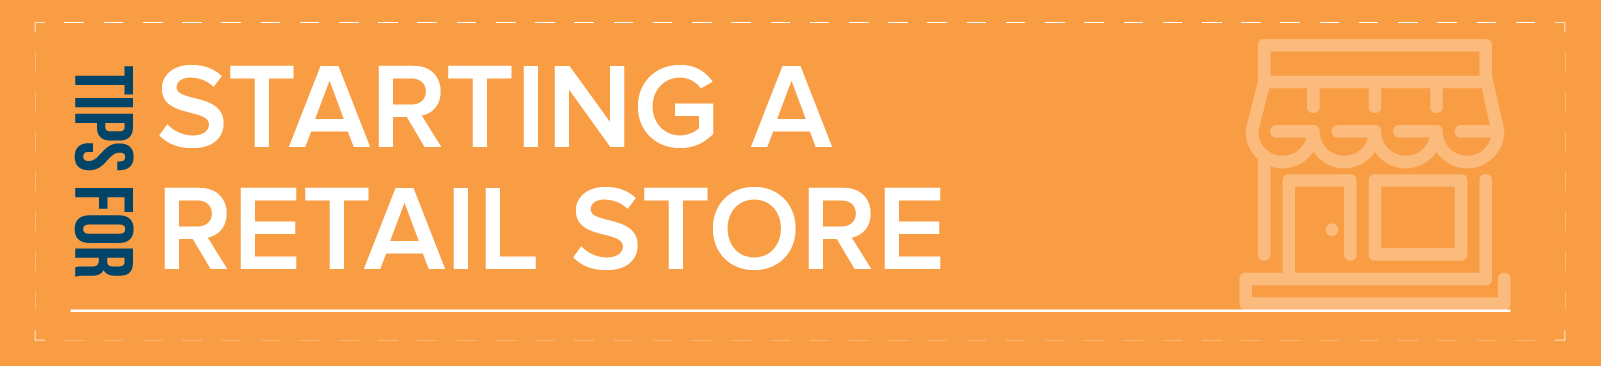 Deputy-30 Tips Real Managers Share for Opening a Successful Retail Store-blog assets-04